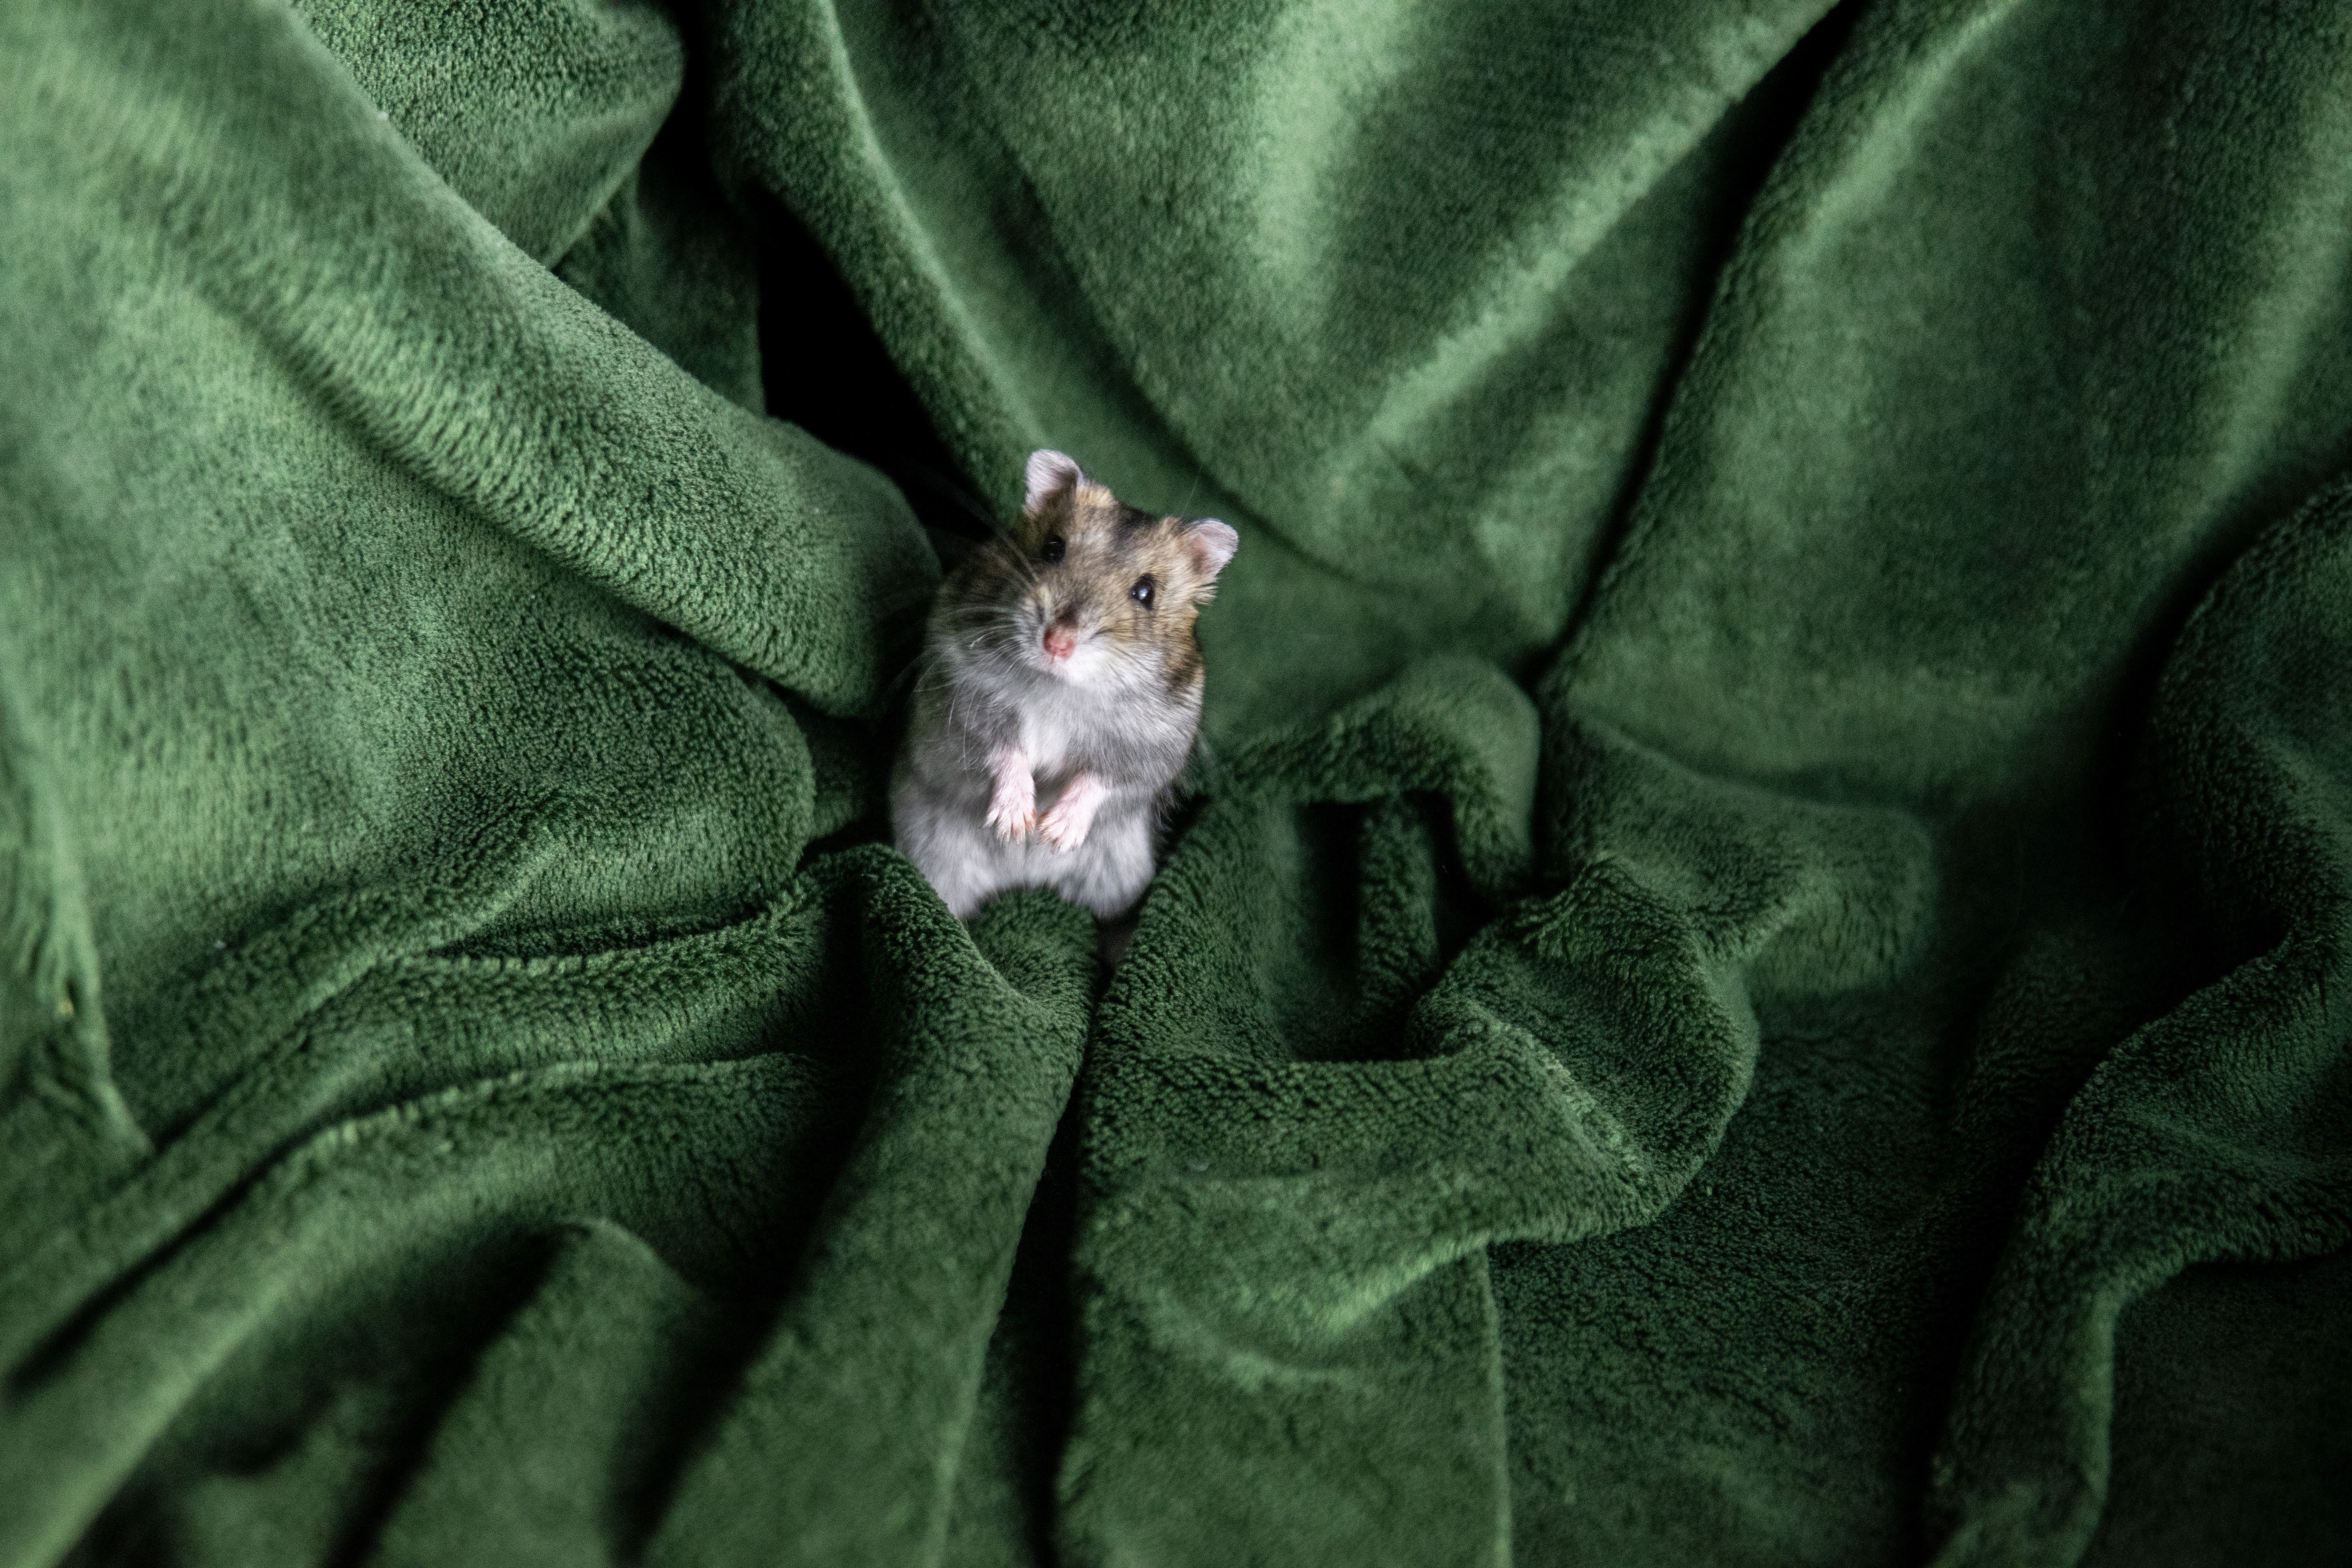 132850 download wallpaper Animals, Hamster, Rodent, Blanket, Pet screensavers and pictures for free